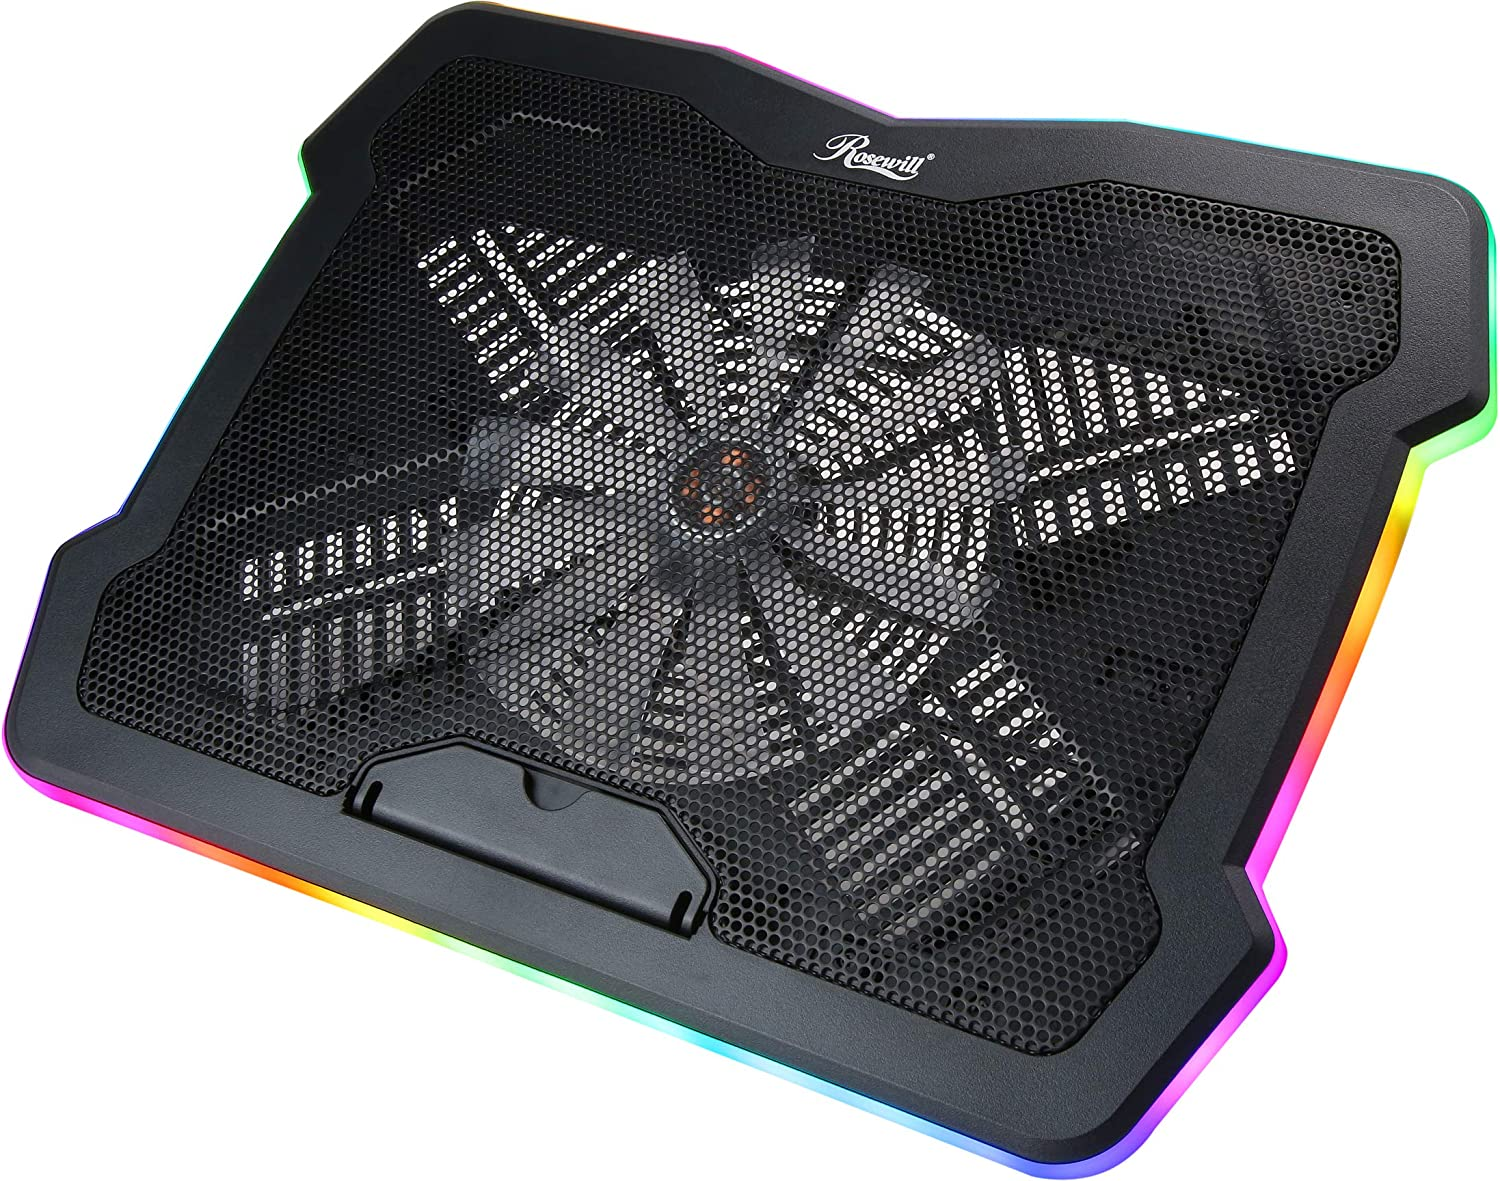 Rosewill RWNB17B 17 inches RGB Gaming Laptop Cooler with Big Quiet Fan. Adjustable Color/Lighting/Fan Speed Modes